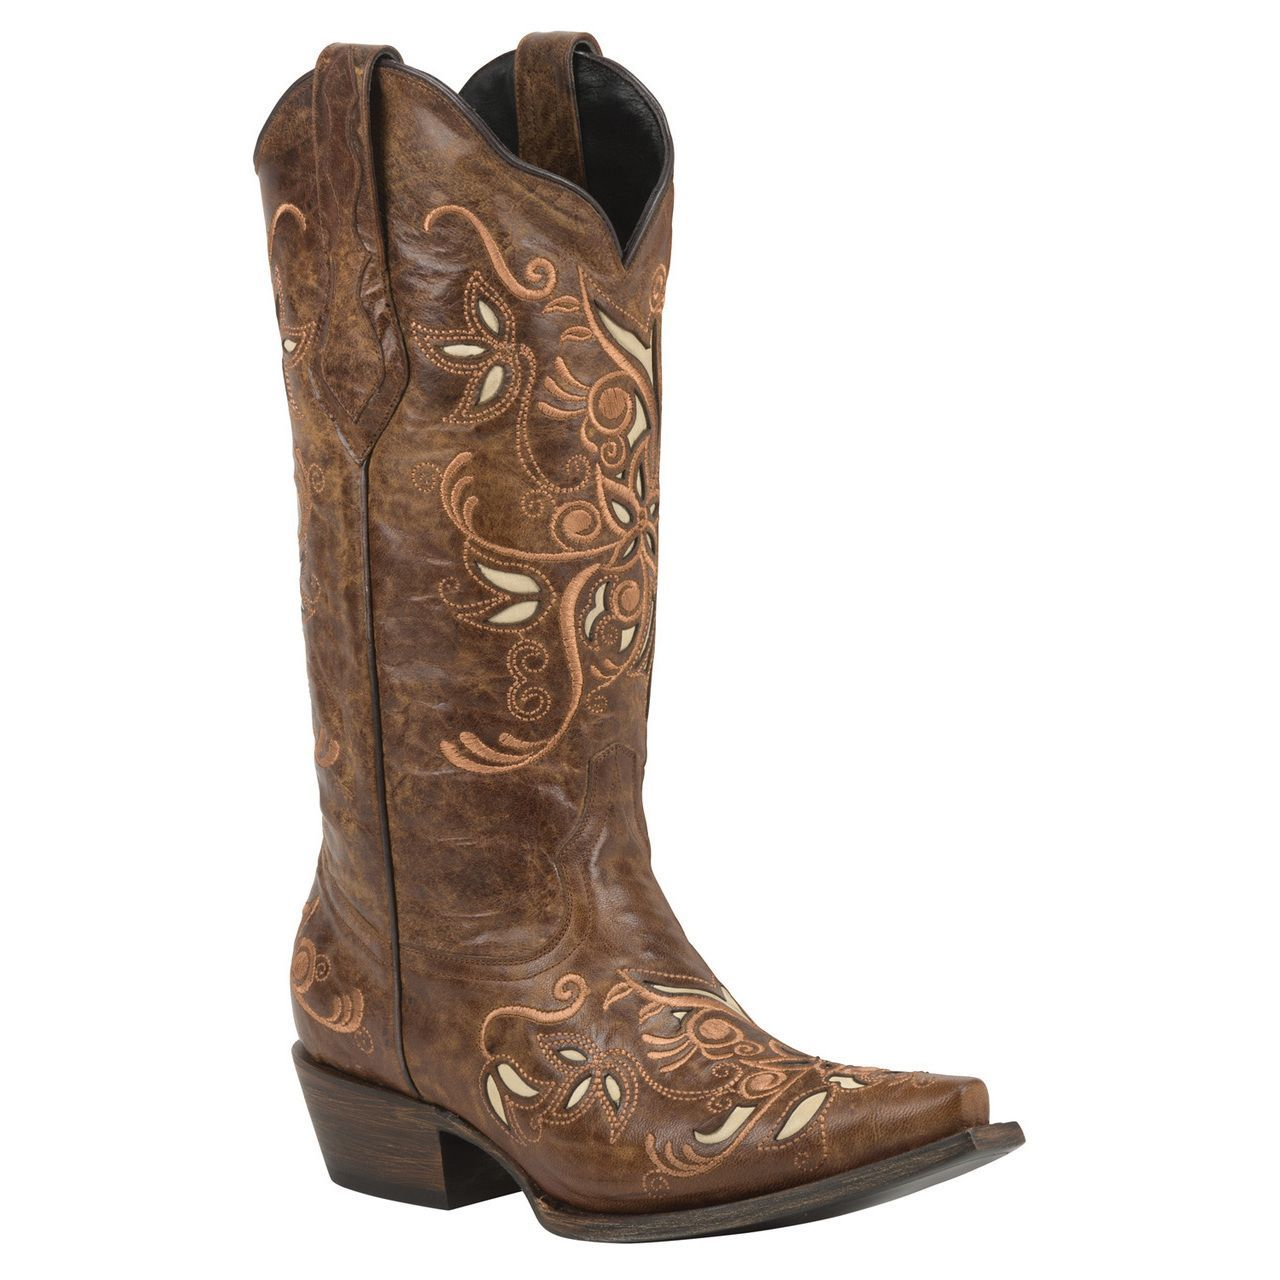 Womens leather cowboy boots